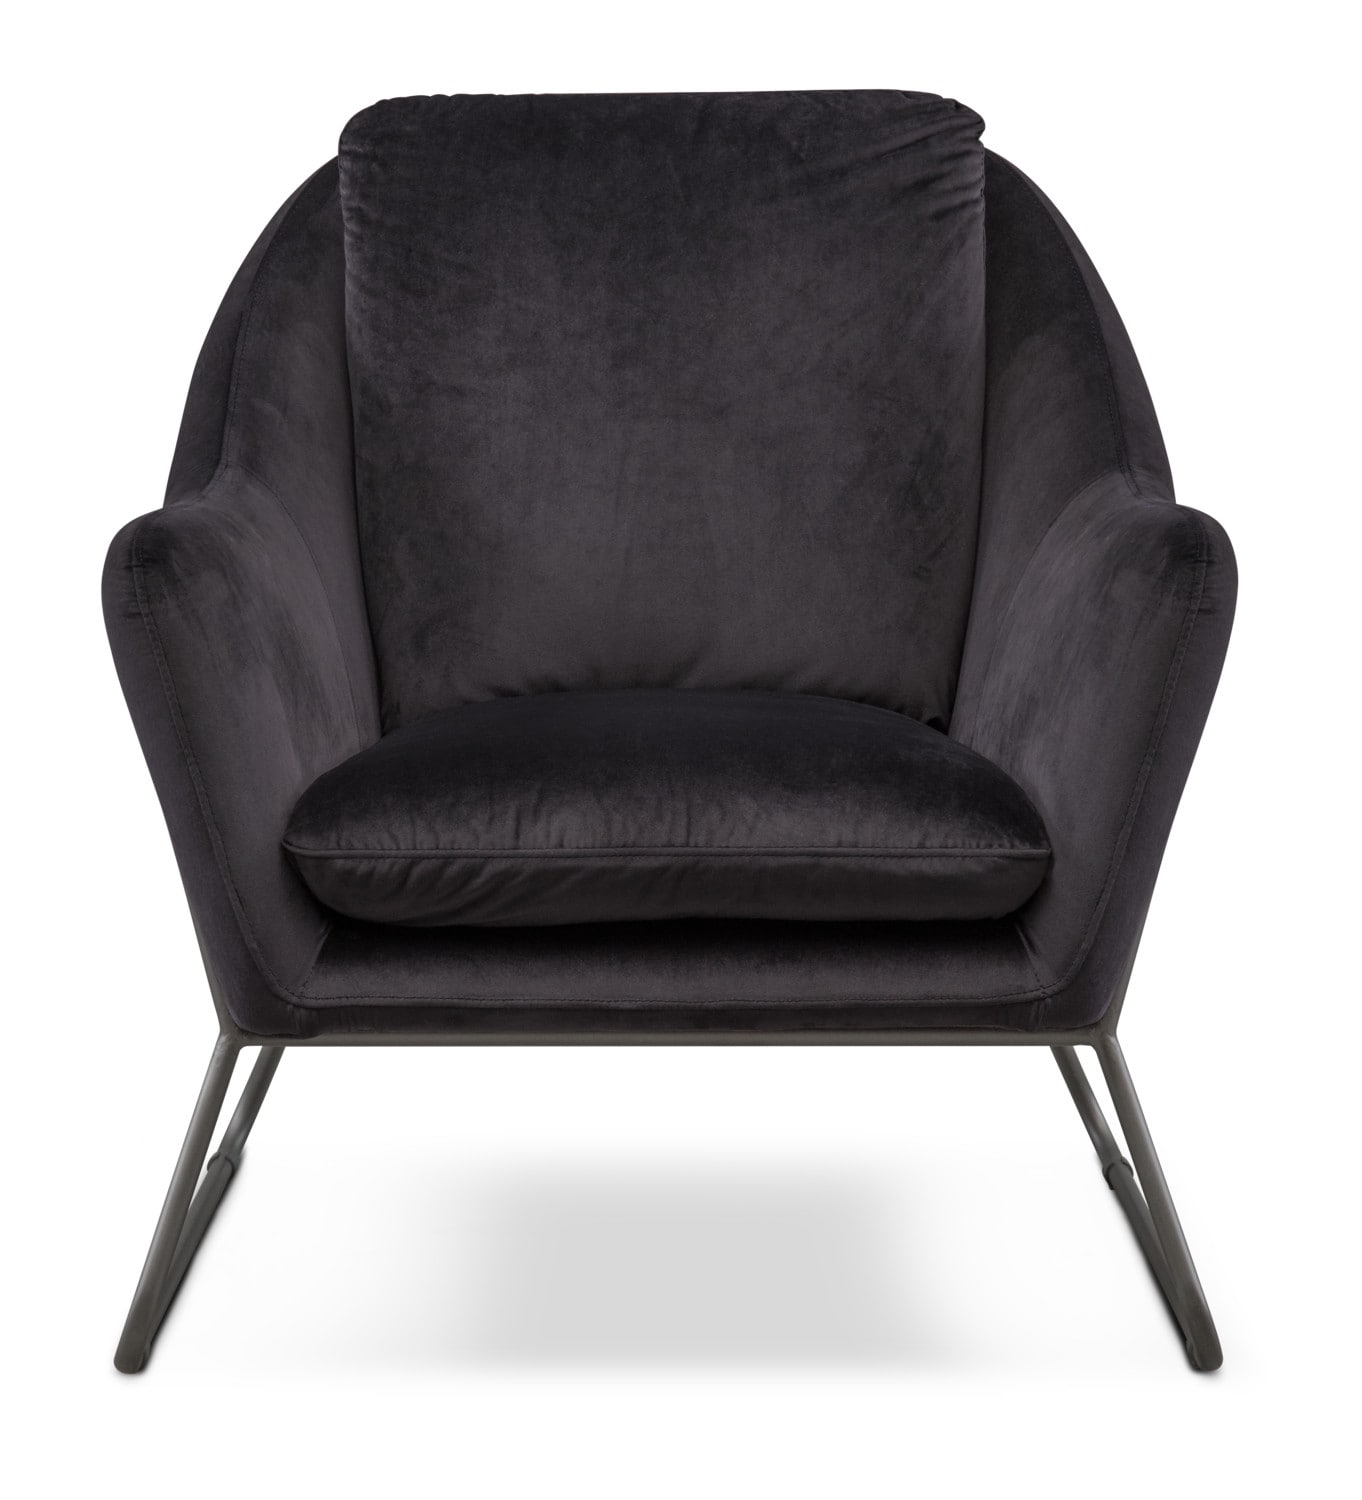 Willow accent chair black